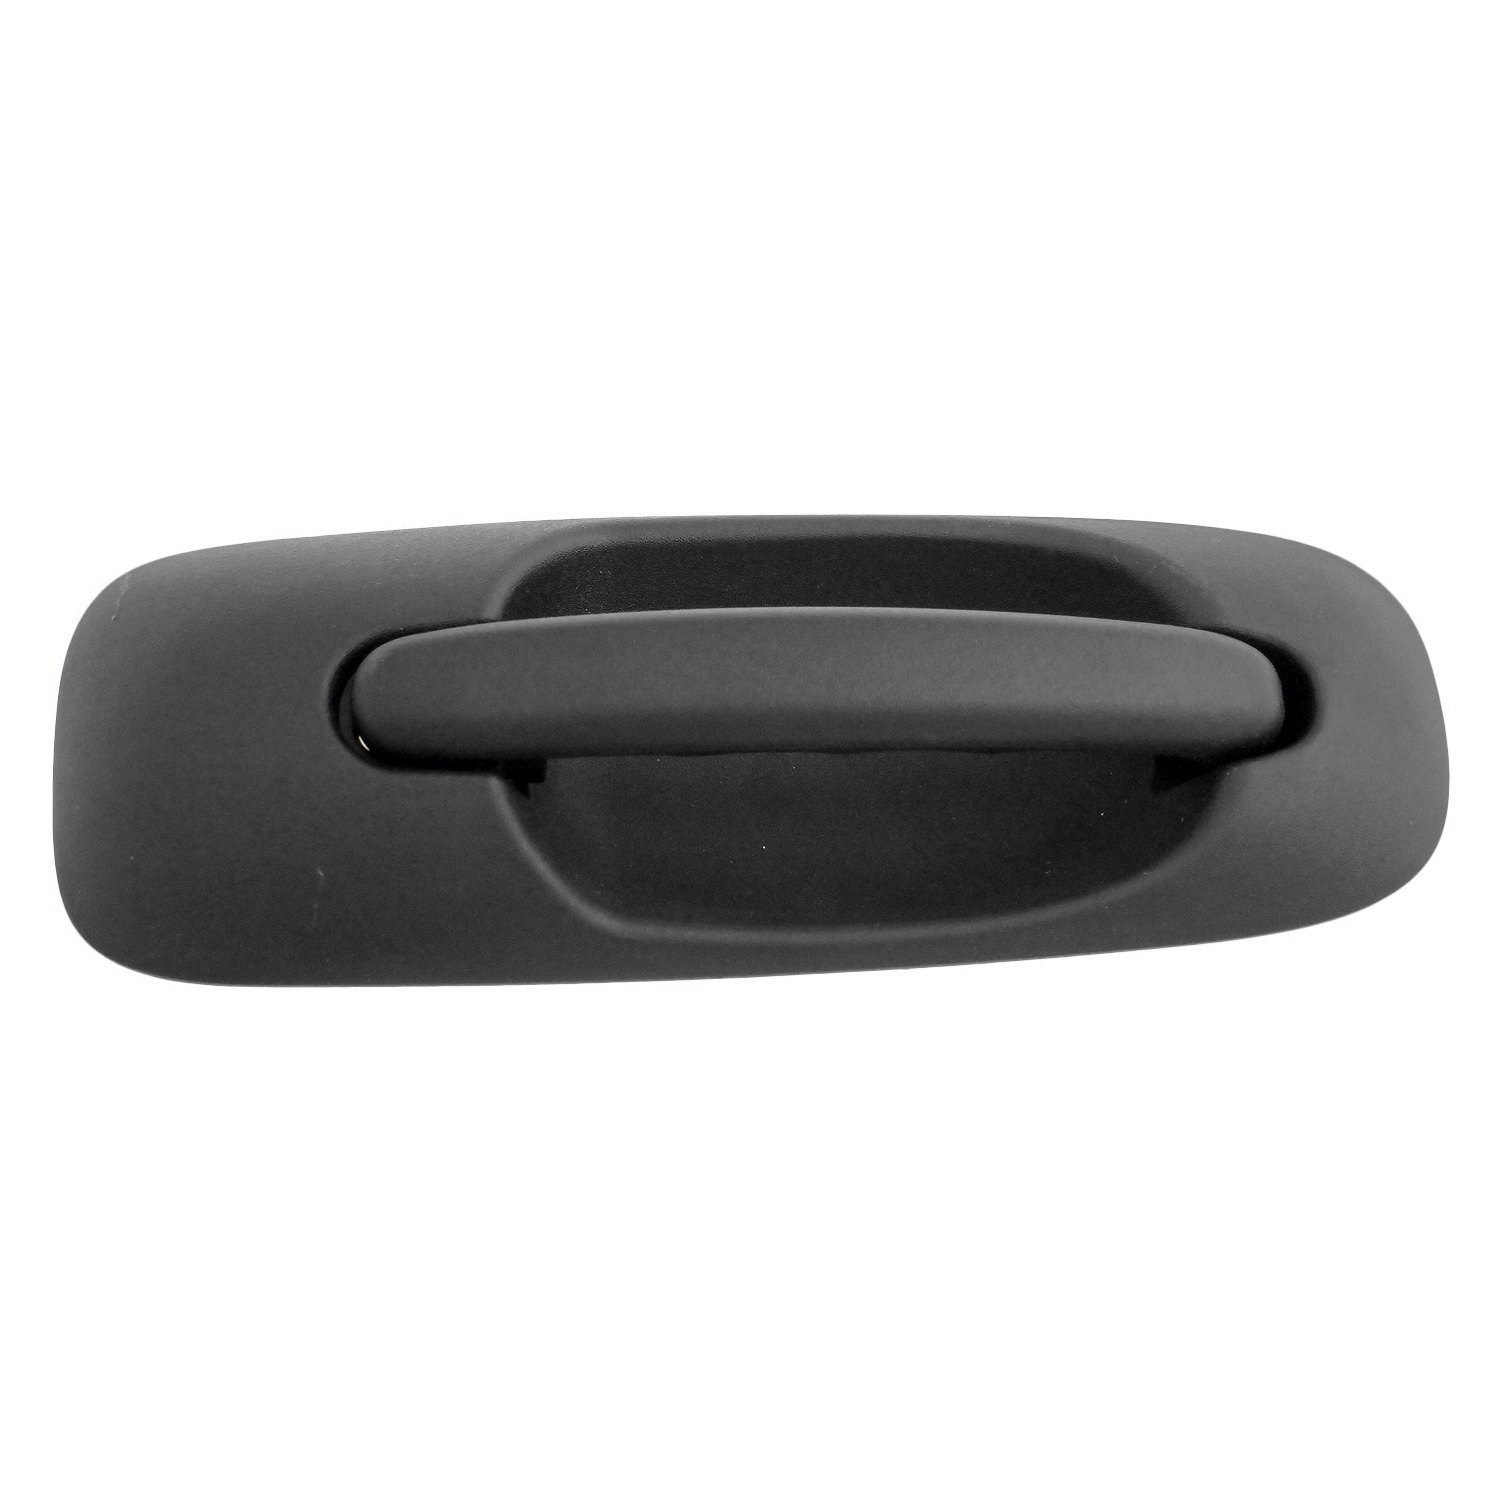 For Chrysler Town & Country 04-07 Exterior Door Handle